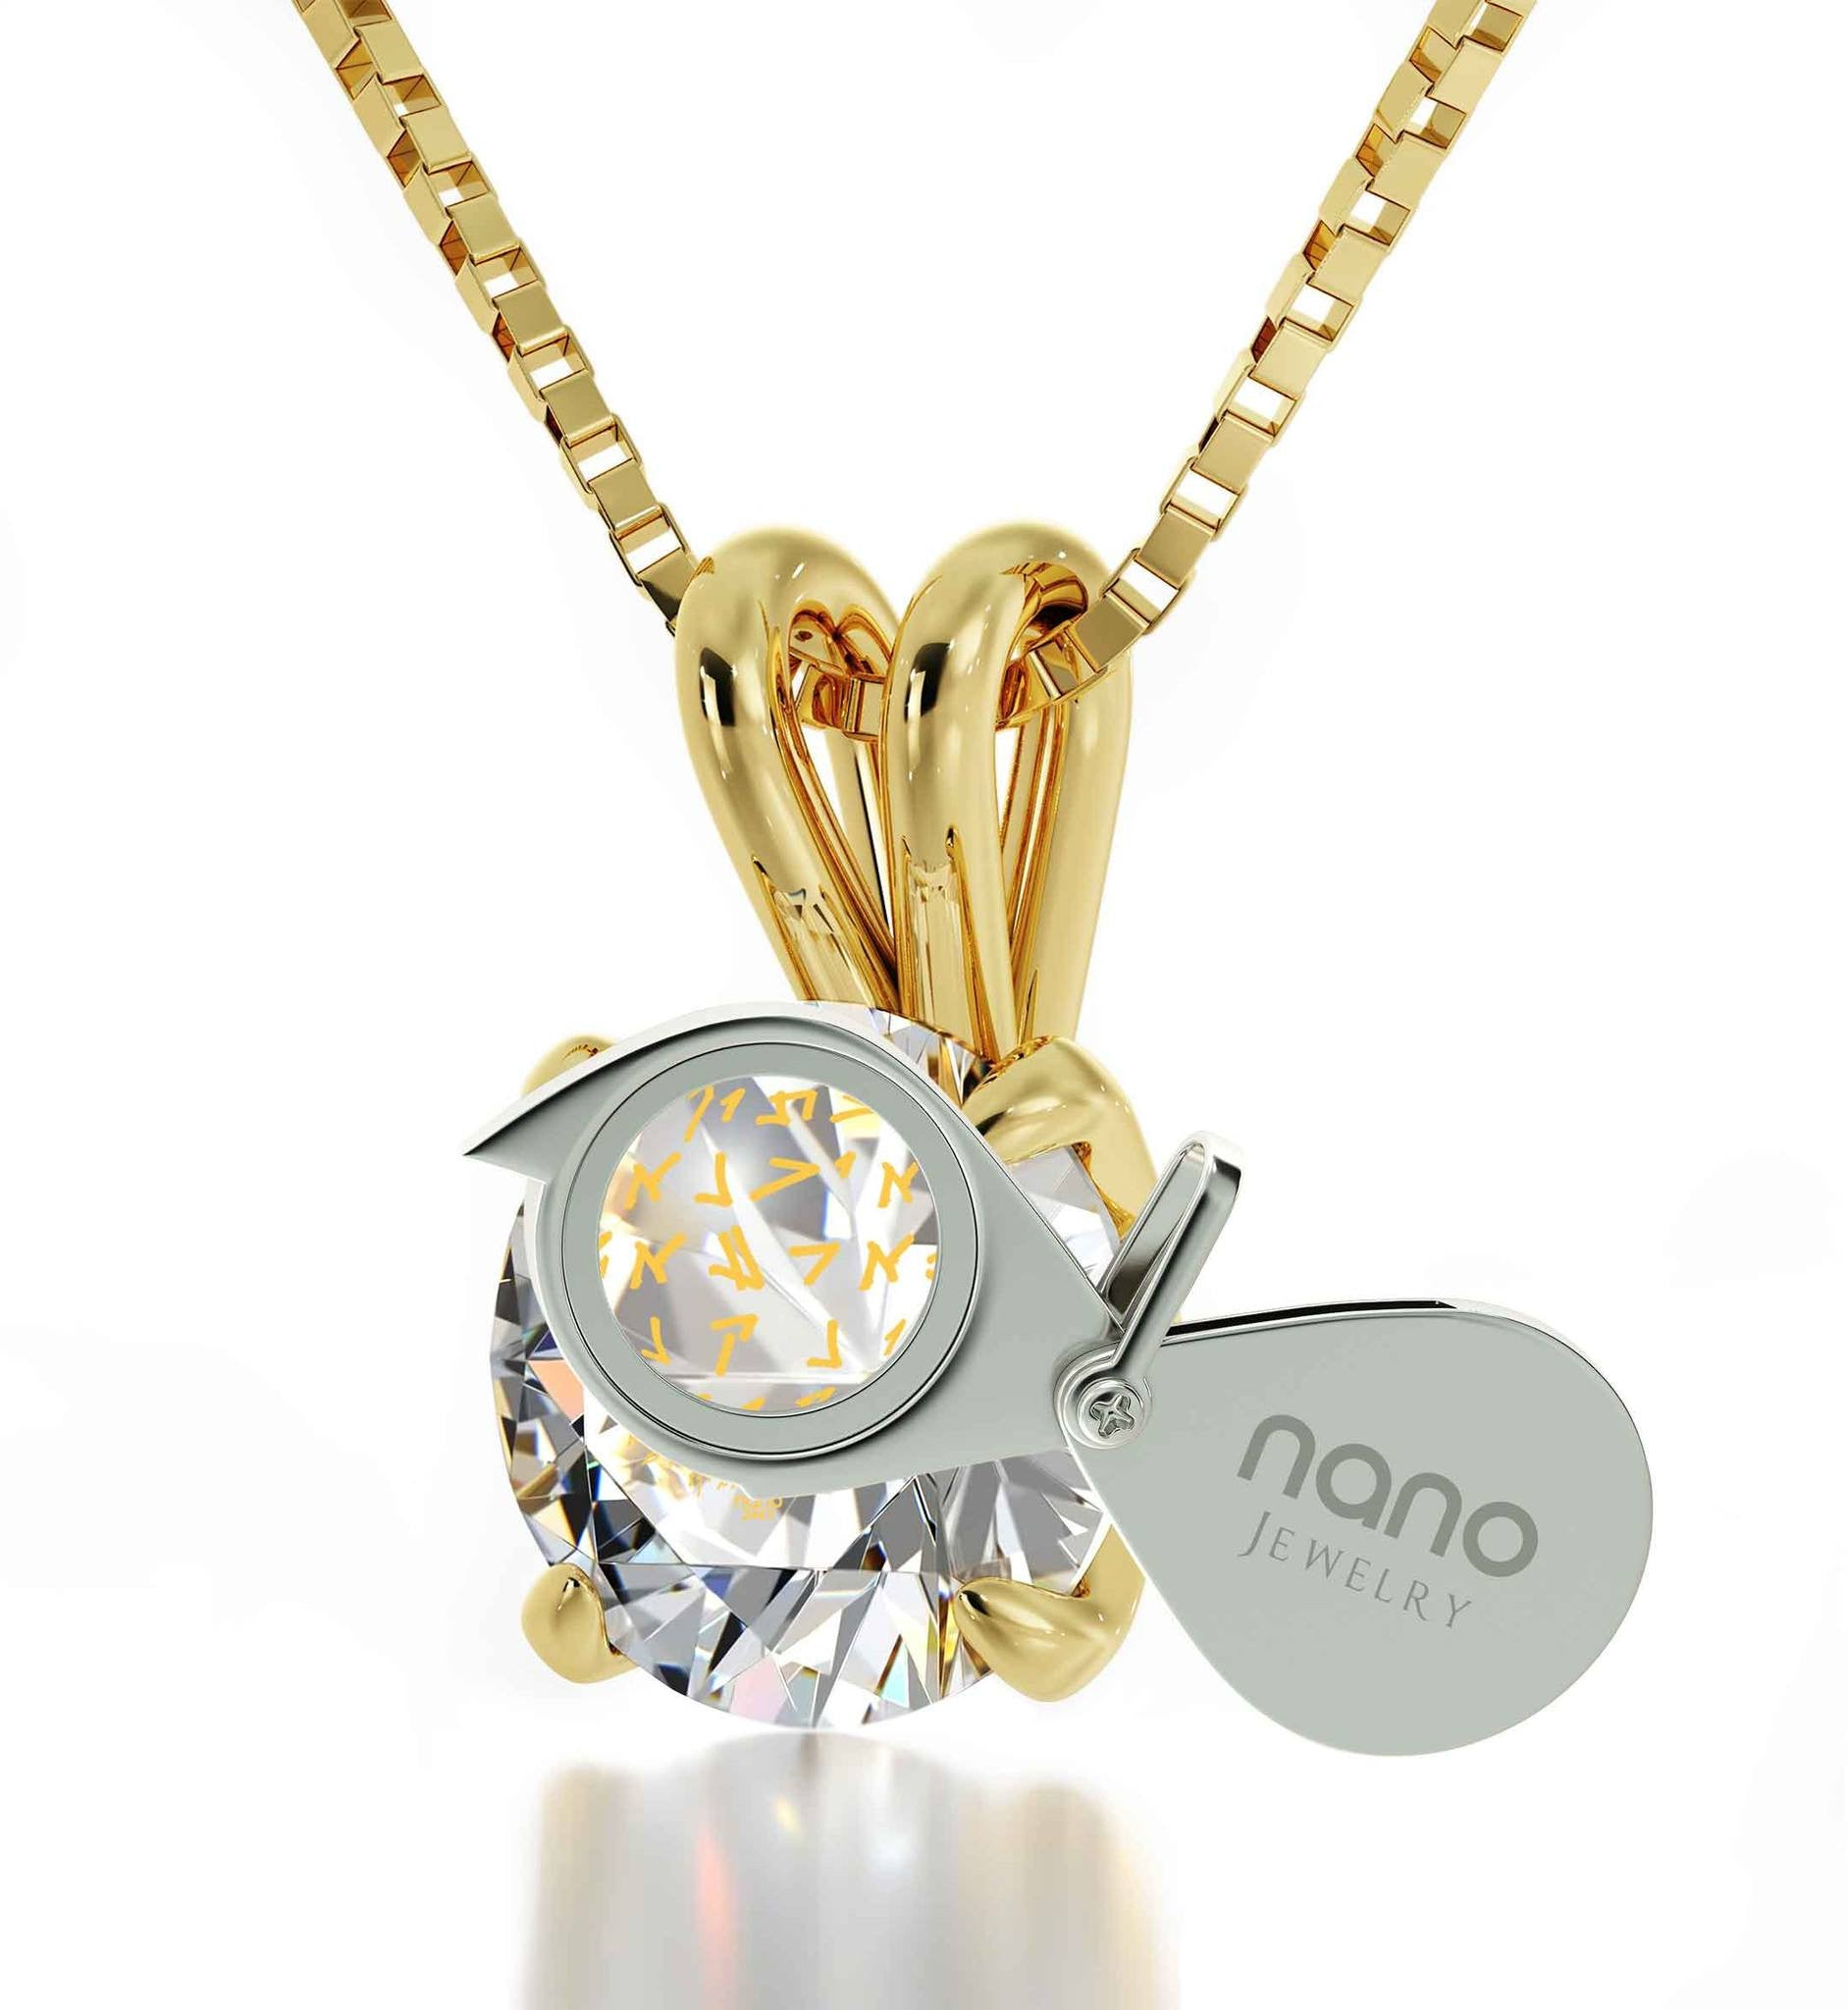 """""Our Father"" in Aramaic, Top Gifts for Wife, Good Presents for Girlfriend, Gold Chain With Pendant, by Nano Jewelry"""